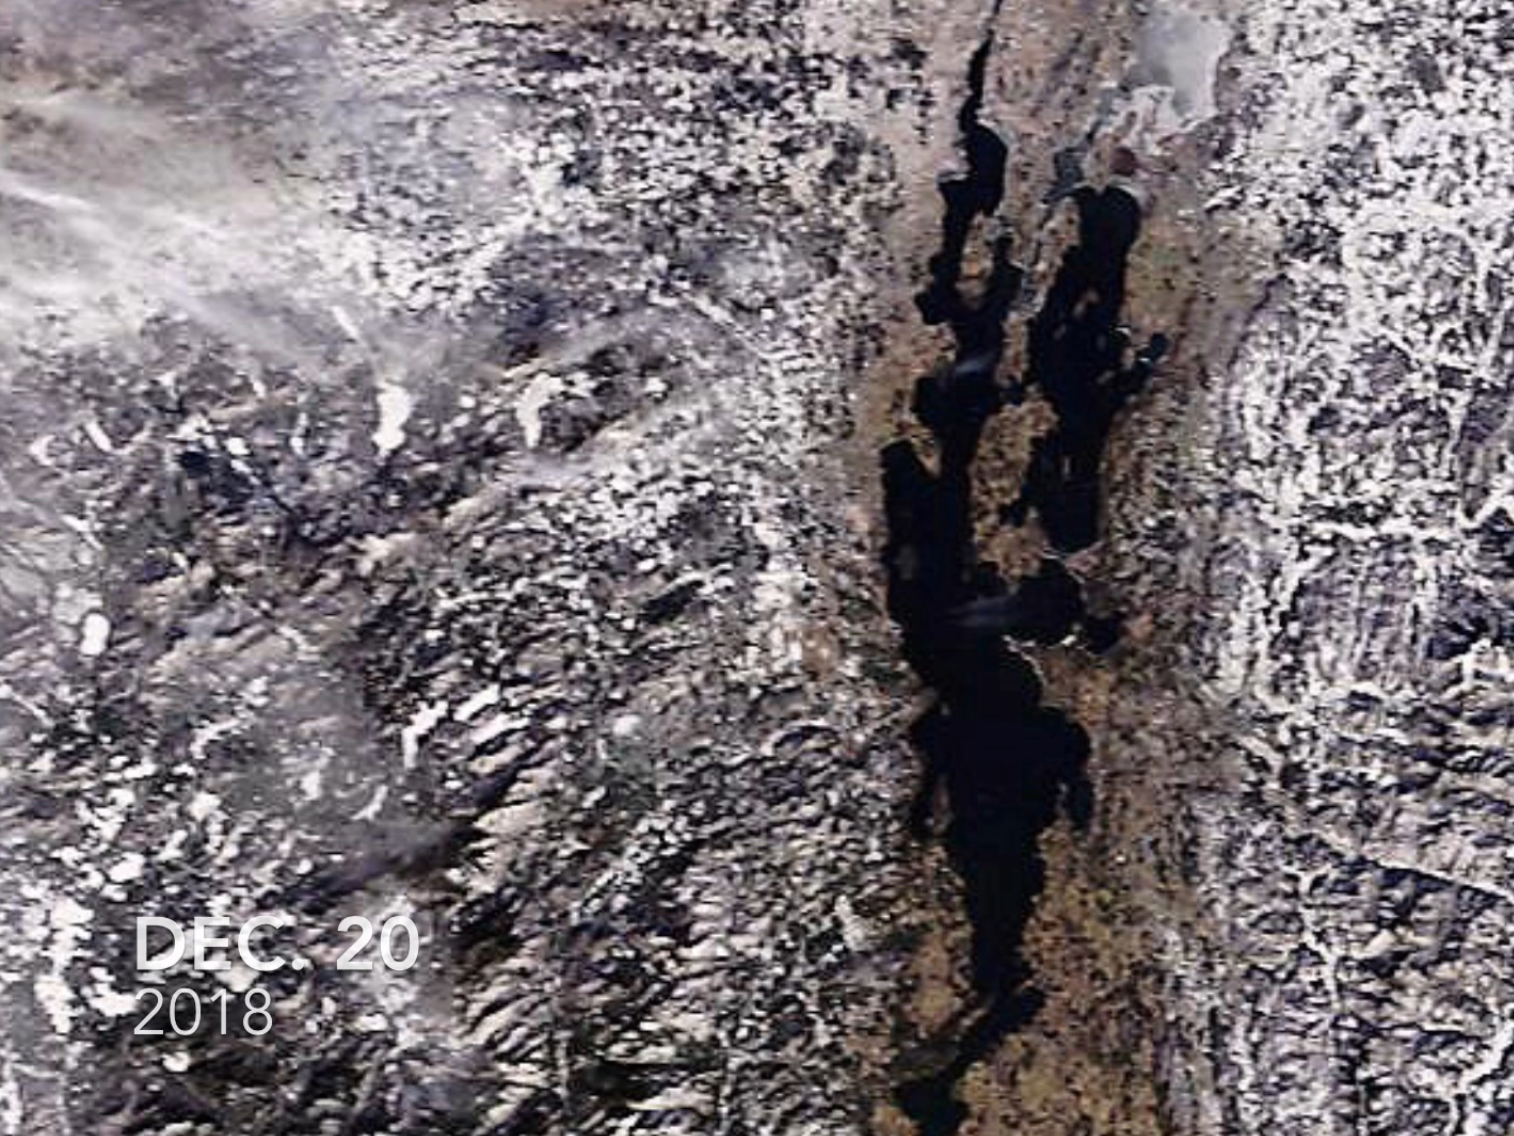 Lake Champlain, as photographed by a NASA satellite on Dec. 20, 2018.